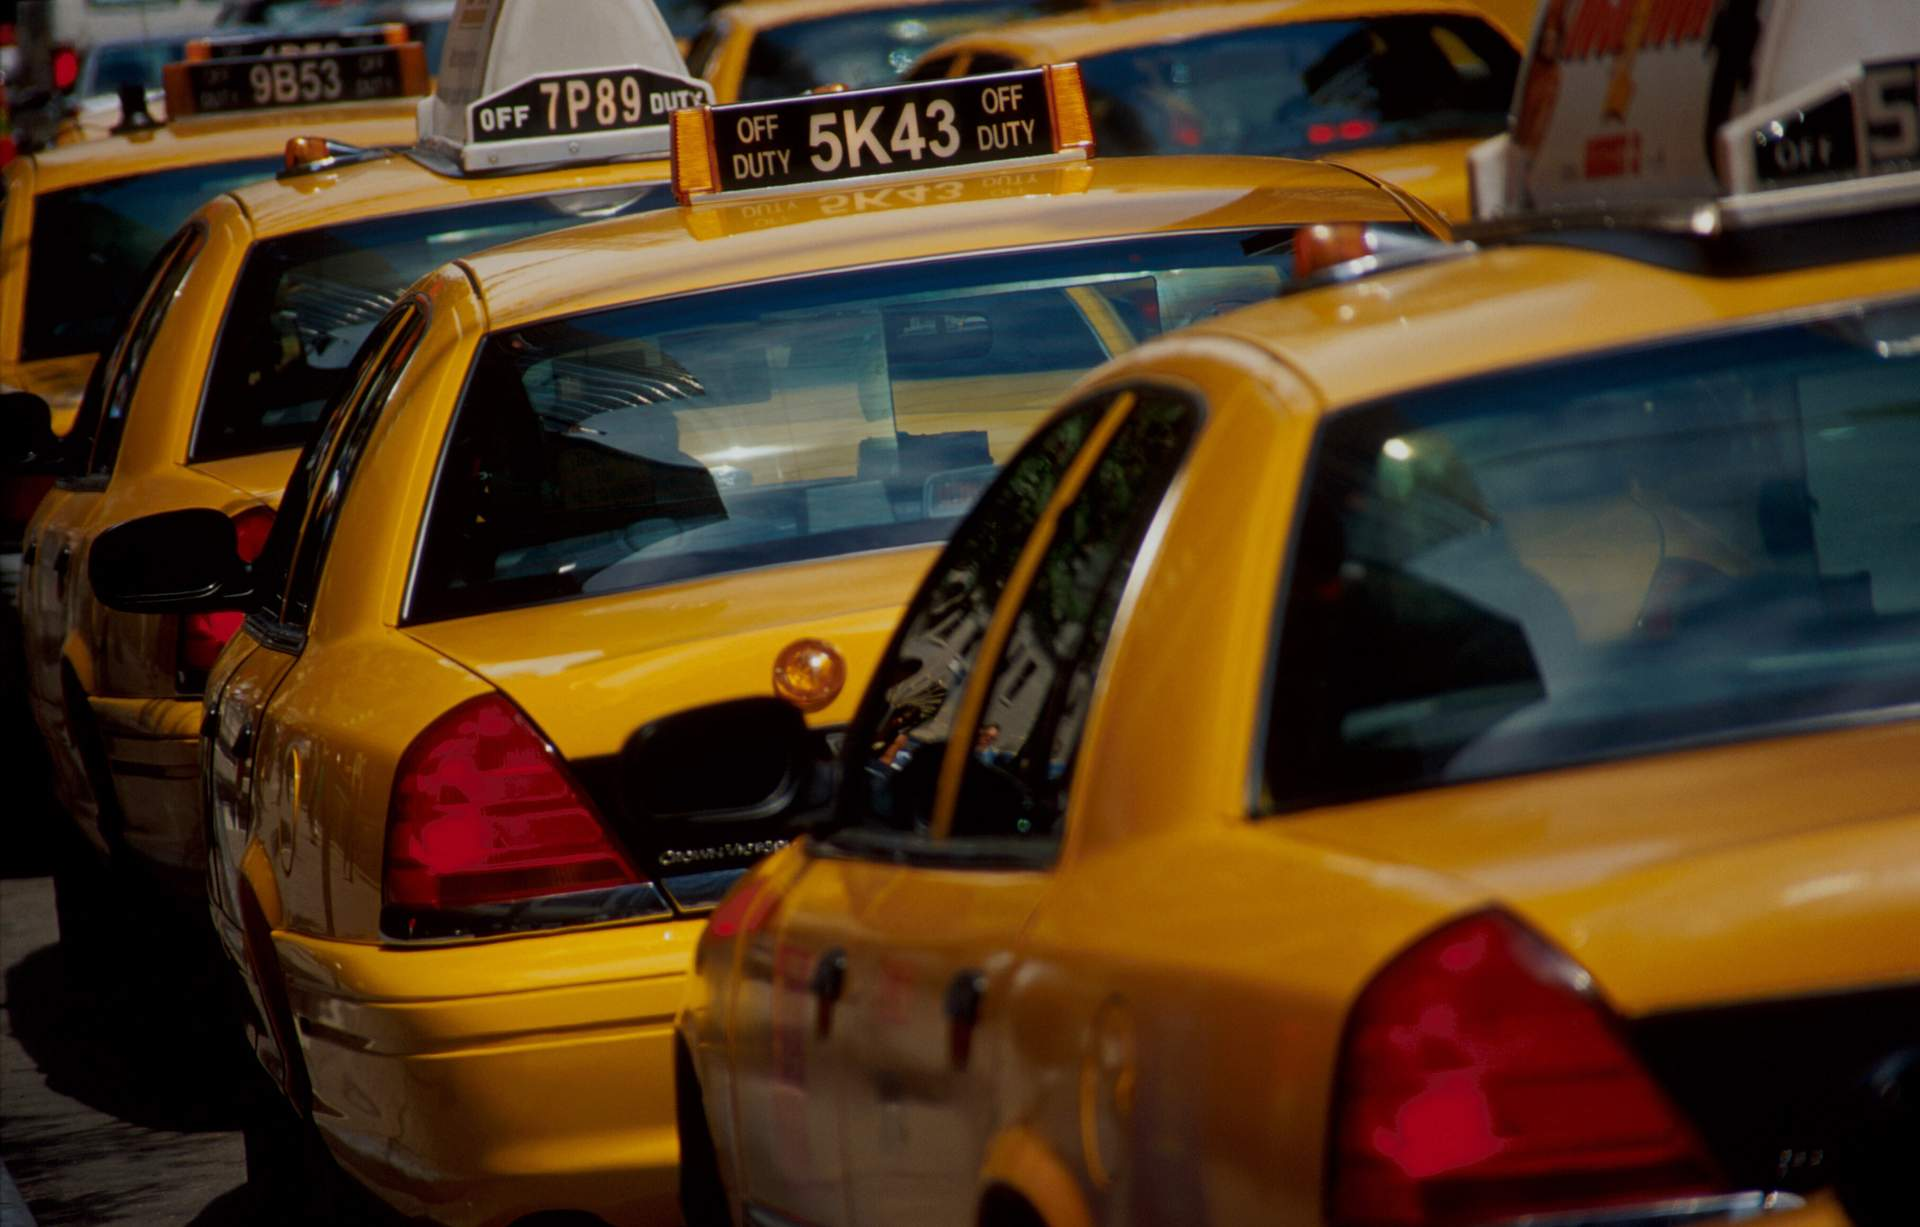 typische Taxis in New York City